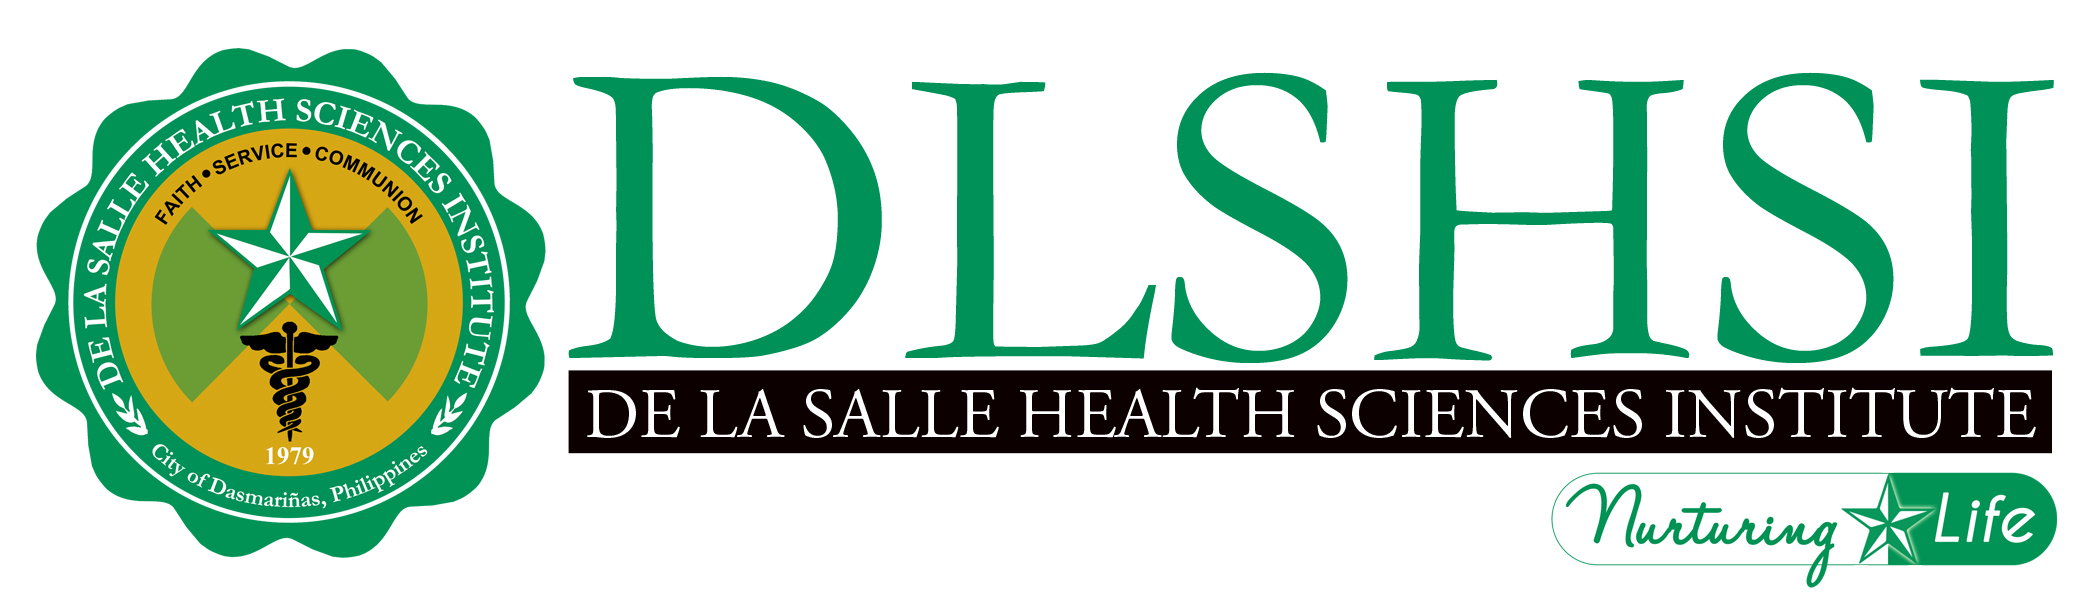 De La Salle Health Sciences Institute